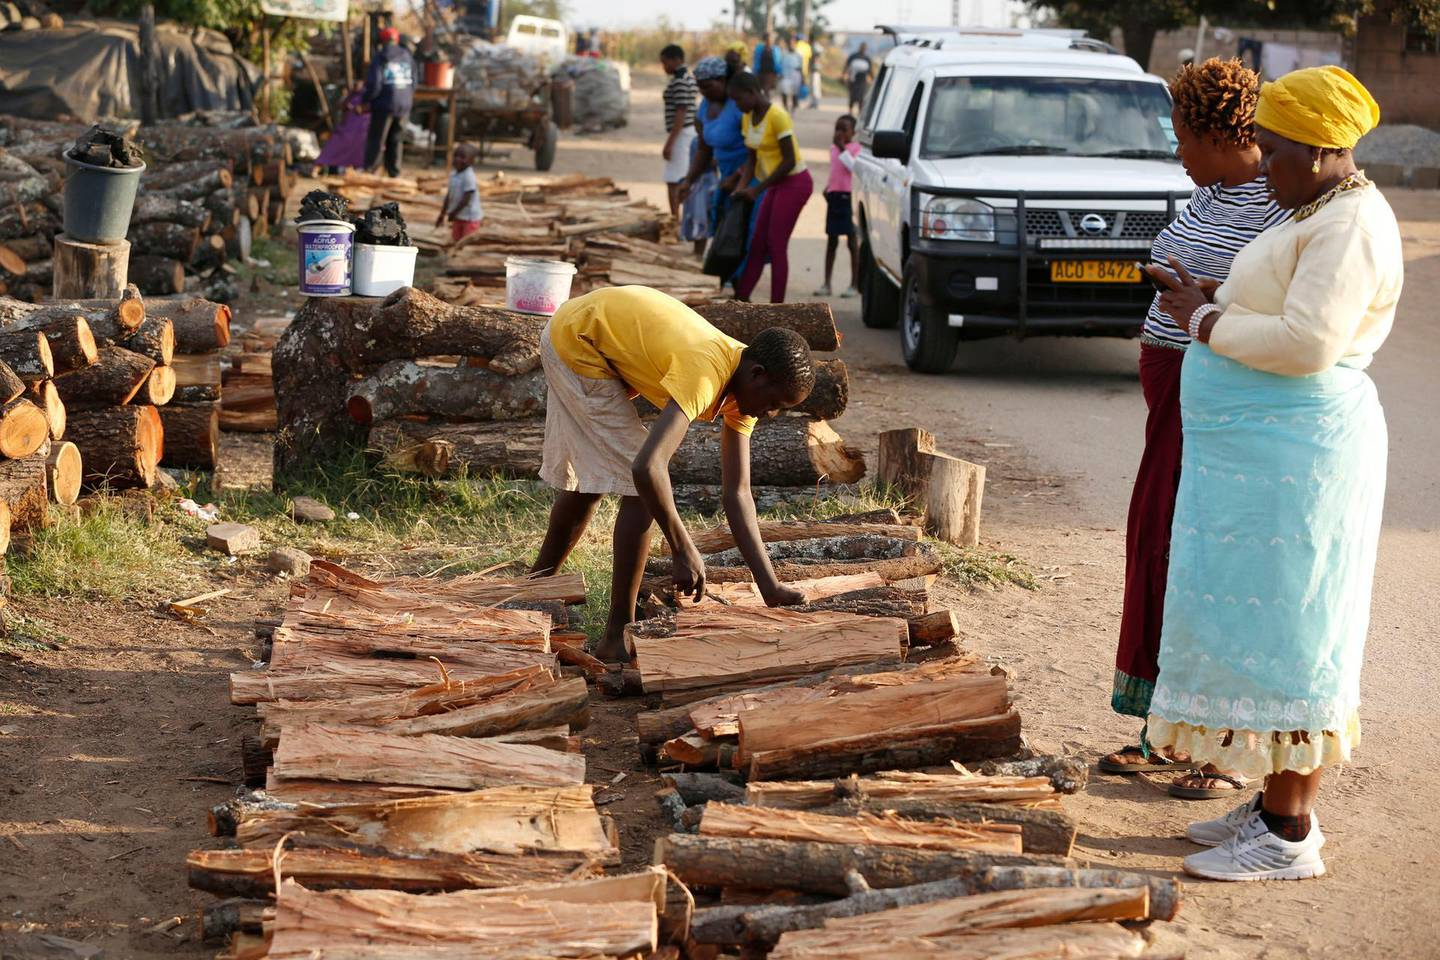 epa07586967 Women buy firewood in Tafara, Zimbabwe, 18 May 2019 (issued 20 May 2019) as power cuts continue. The Zimbabwe Electricity Transmission and Distribution Company (ZETDC), citing reduced output at its largest hydro plant and ageing coal-fired generators, said power cuts which started a week now would last up to eight hours during morning and evening peak periods. This has led to massive disruption of production and has also led to a huge demand of firewood and liquid petroleum gas.  EPA/AARON UFUMELI